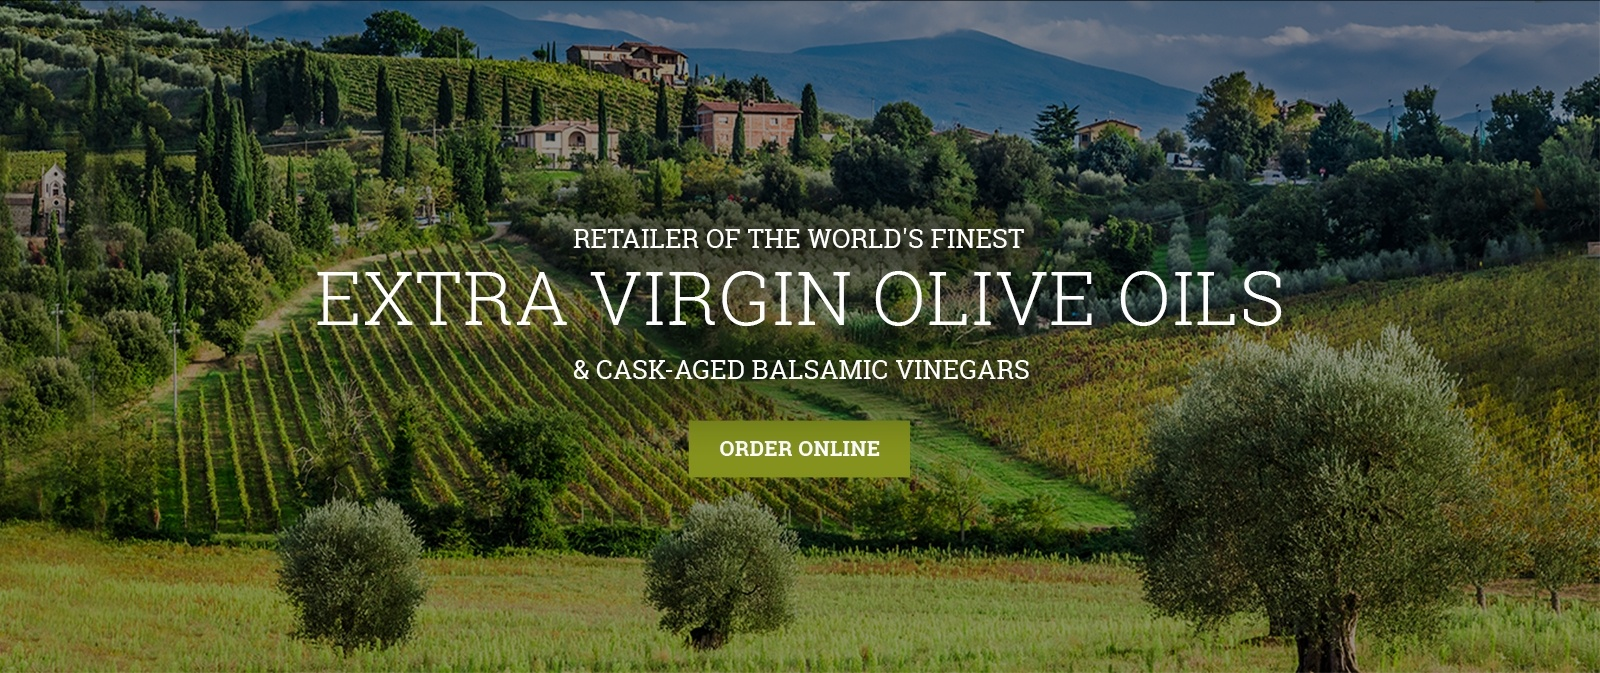 Retailer of the world's finest and freshest extra virgin olive oils | Artisan Olive Oil and Vinegar Store